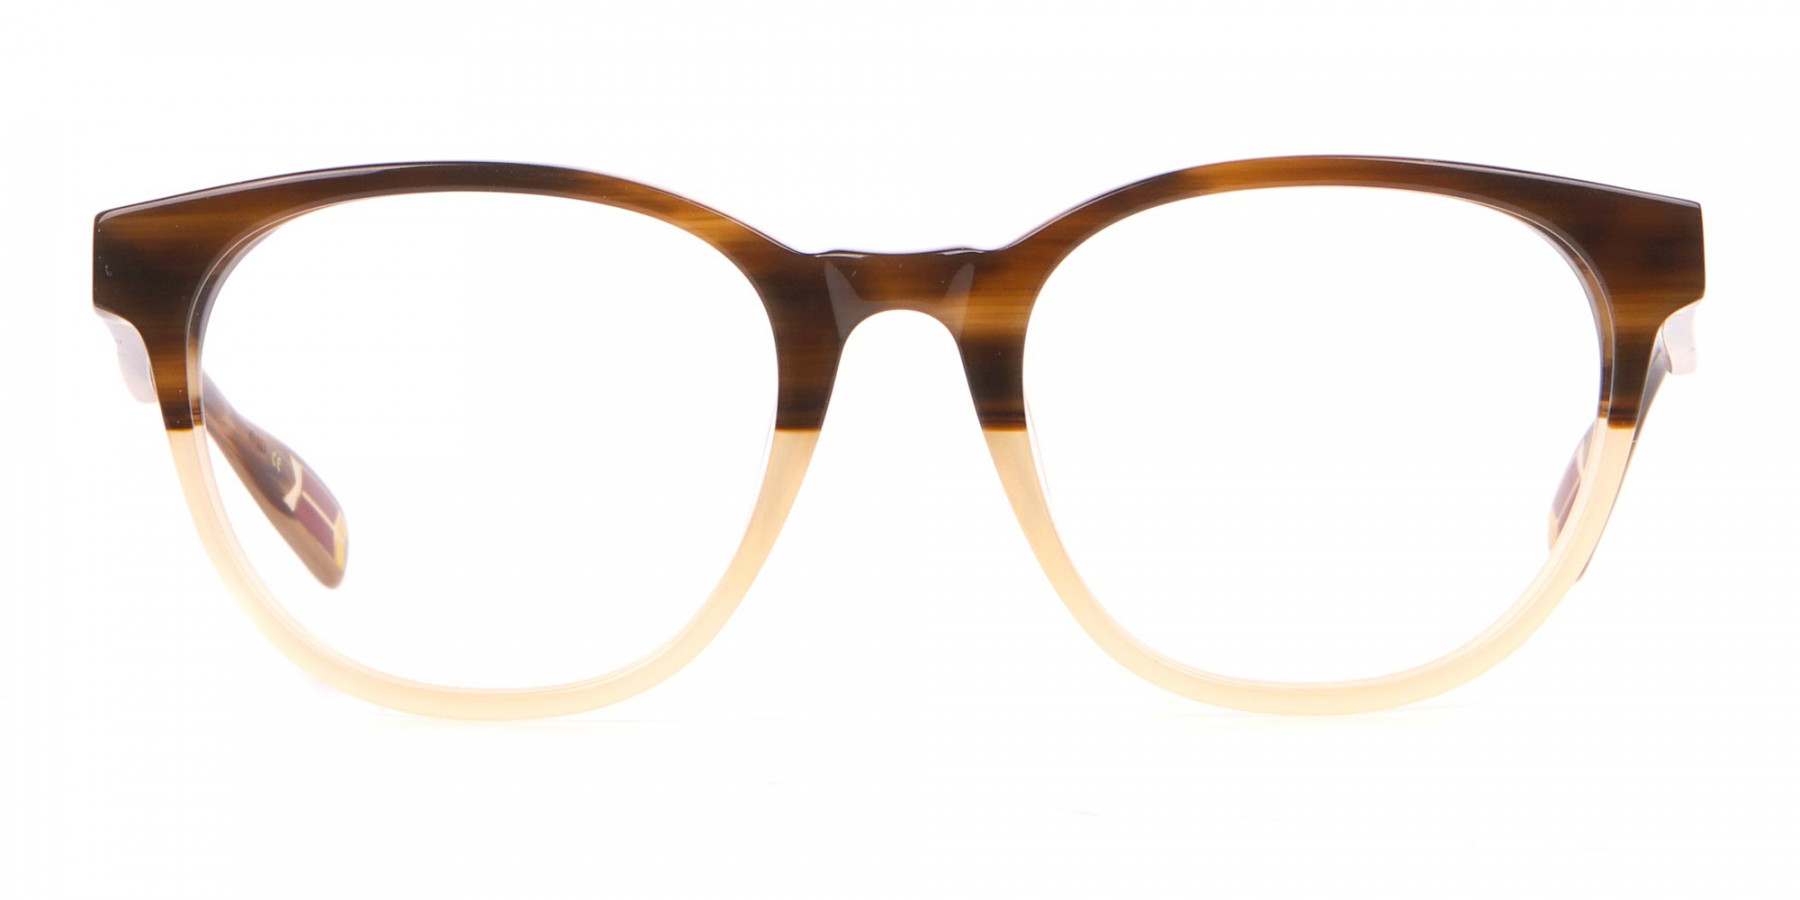 TED BAKER TB8197 Cade Glasses Classic Round Brown & Honey-1